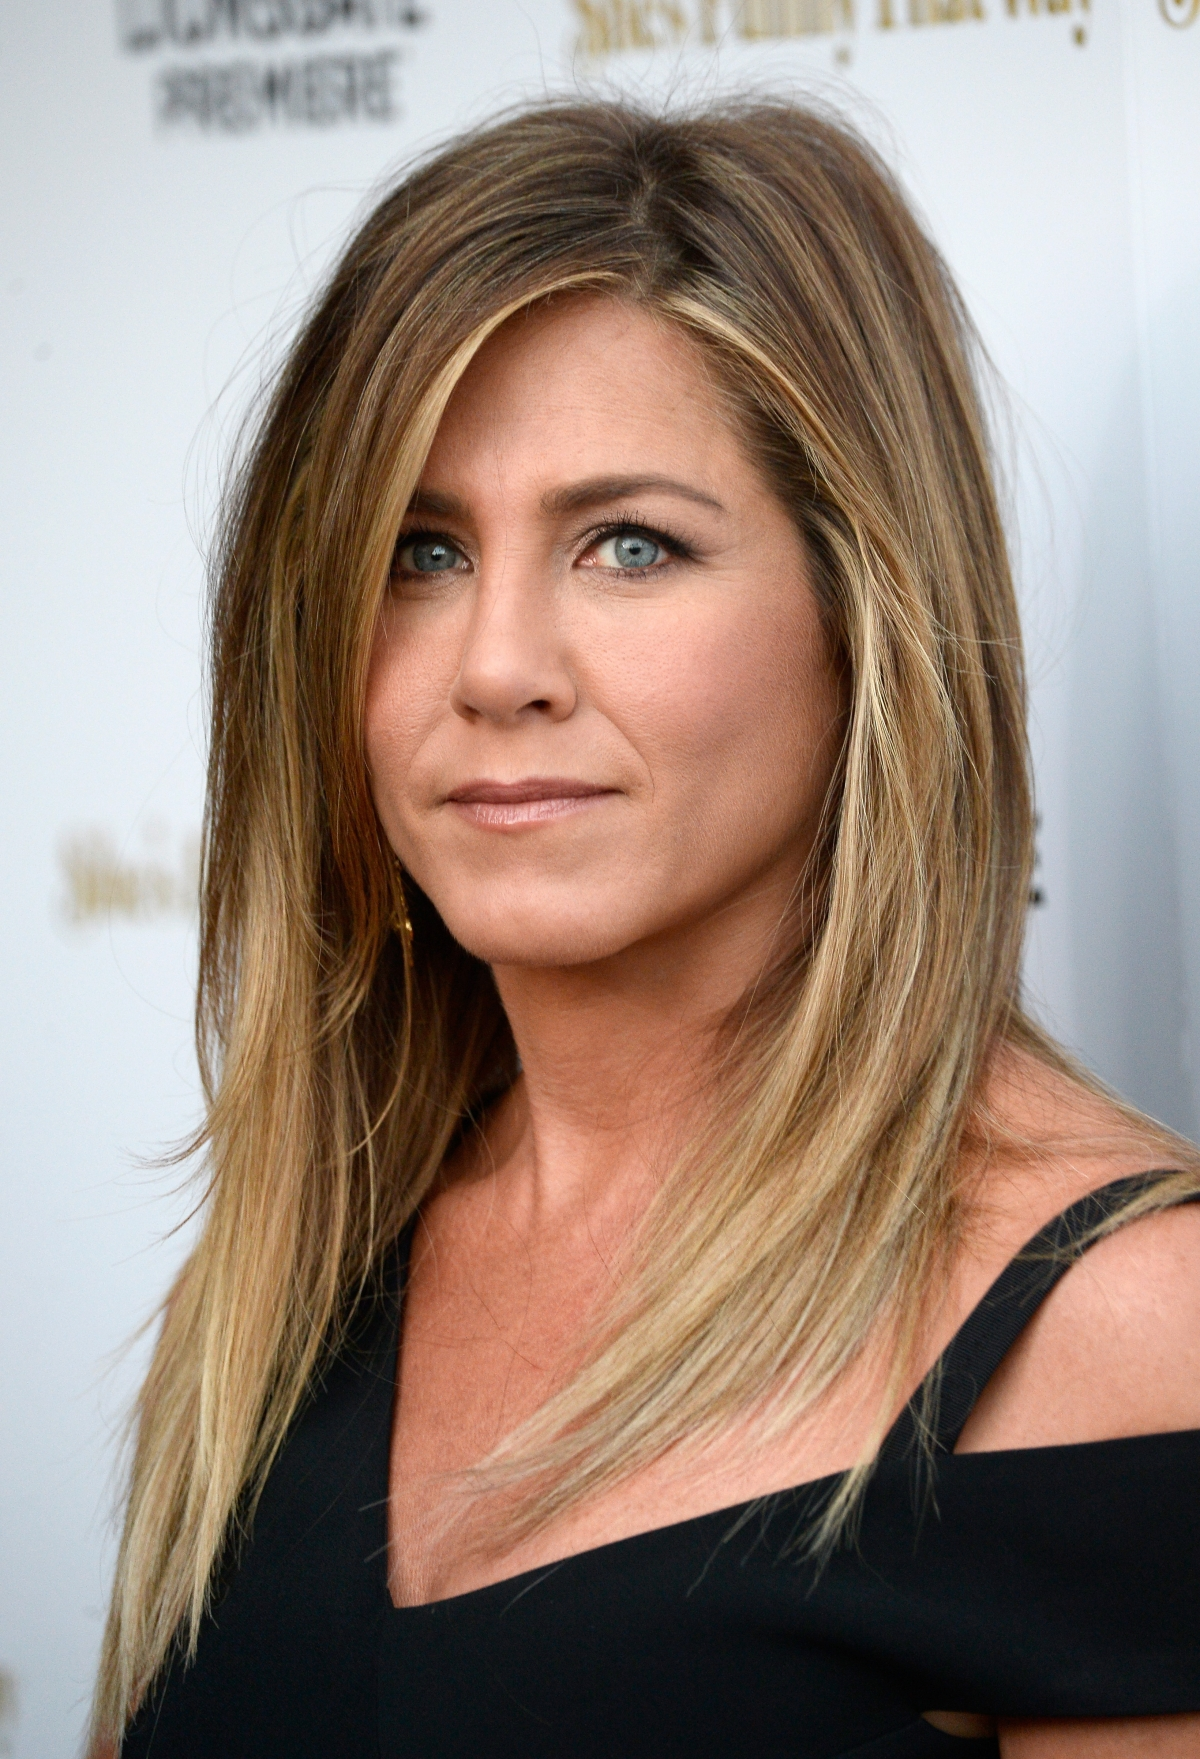 Jennifer Aniston S Snapchat Debut Photo Is Gorgeous